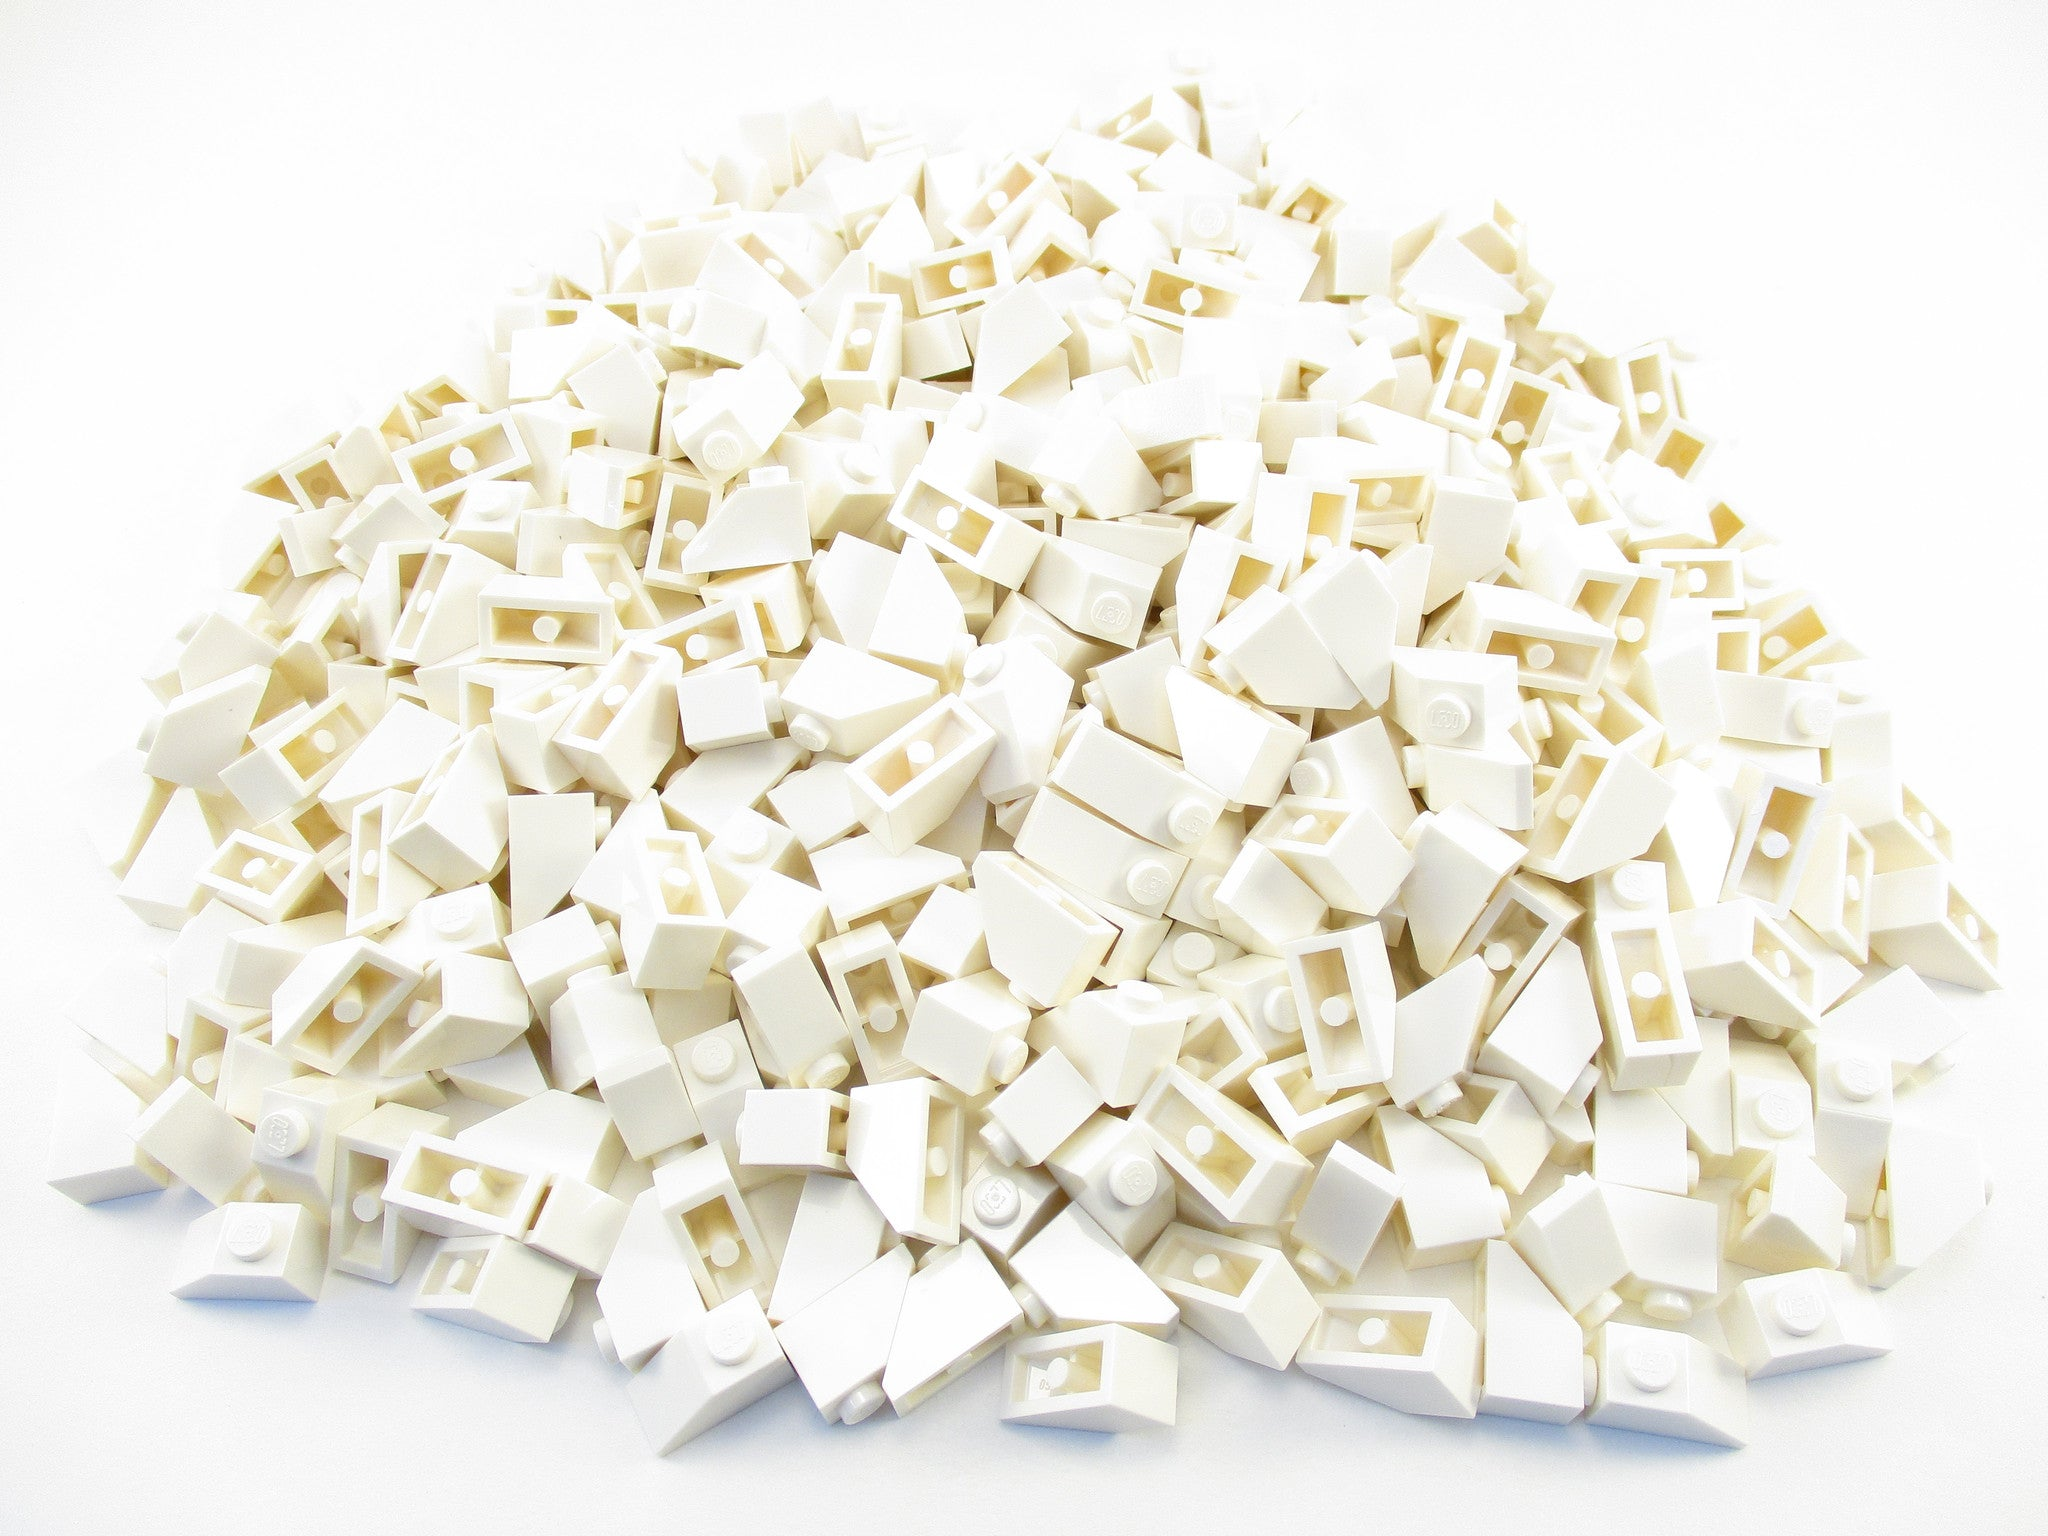 LEGO White Slope 45 2x1 Lot of 100 Parts Pieces 3040